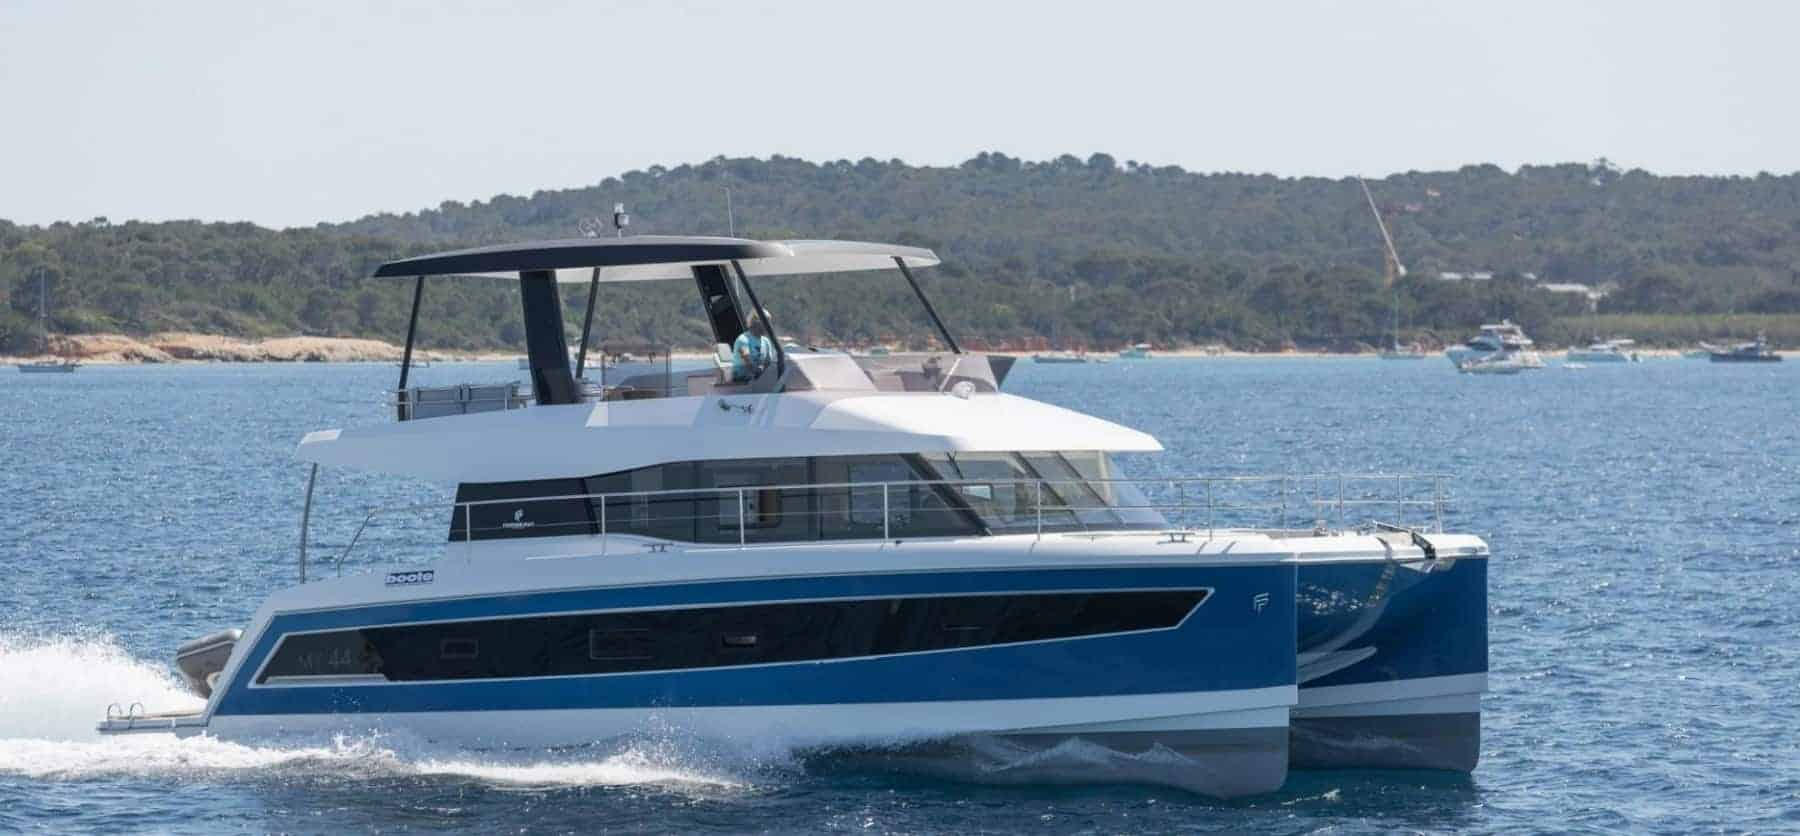 The beautiful Fountaine Pajot Motor Yacht 44 cruising away from the tropical landscape that is seen in the background